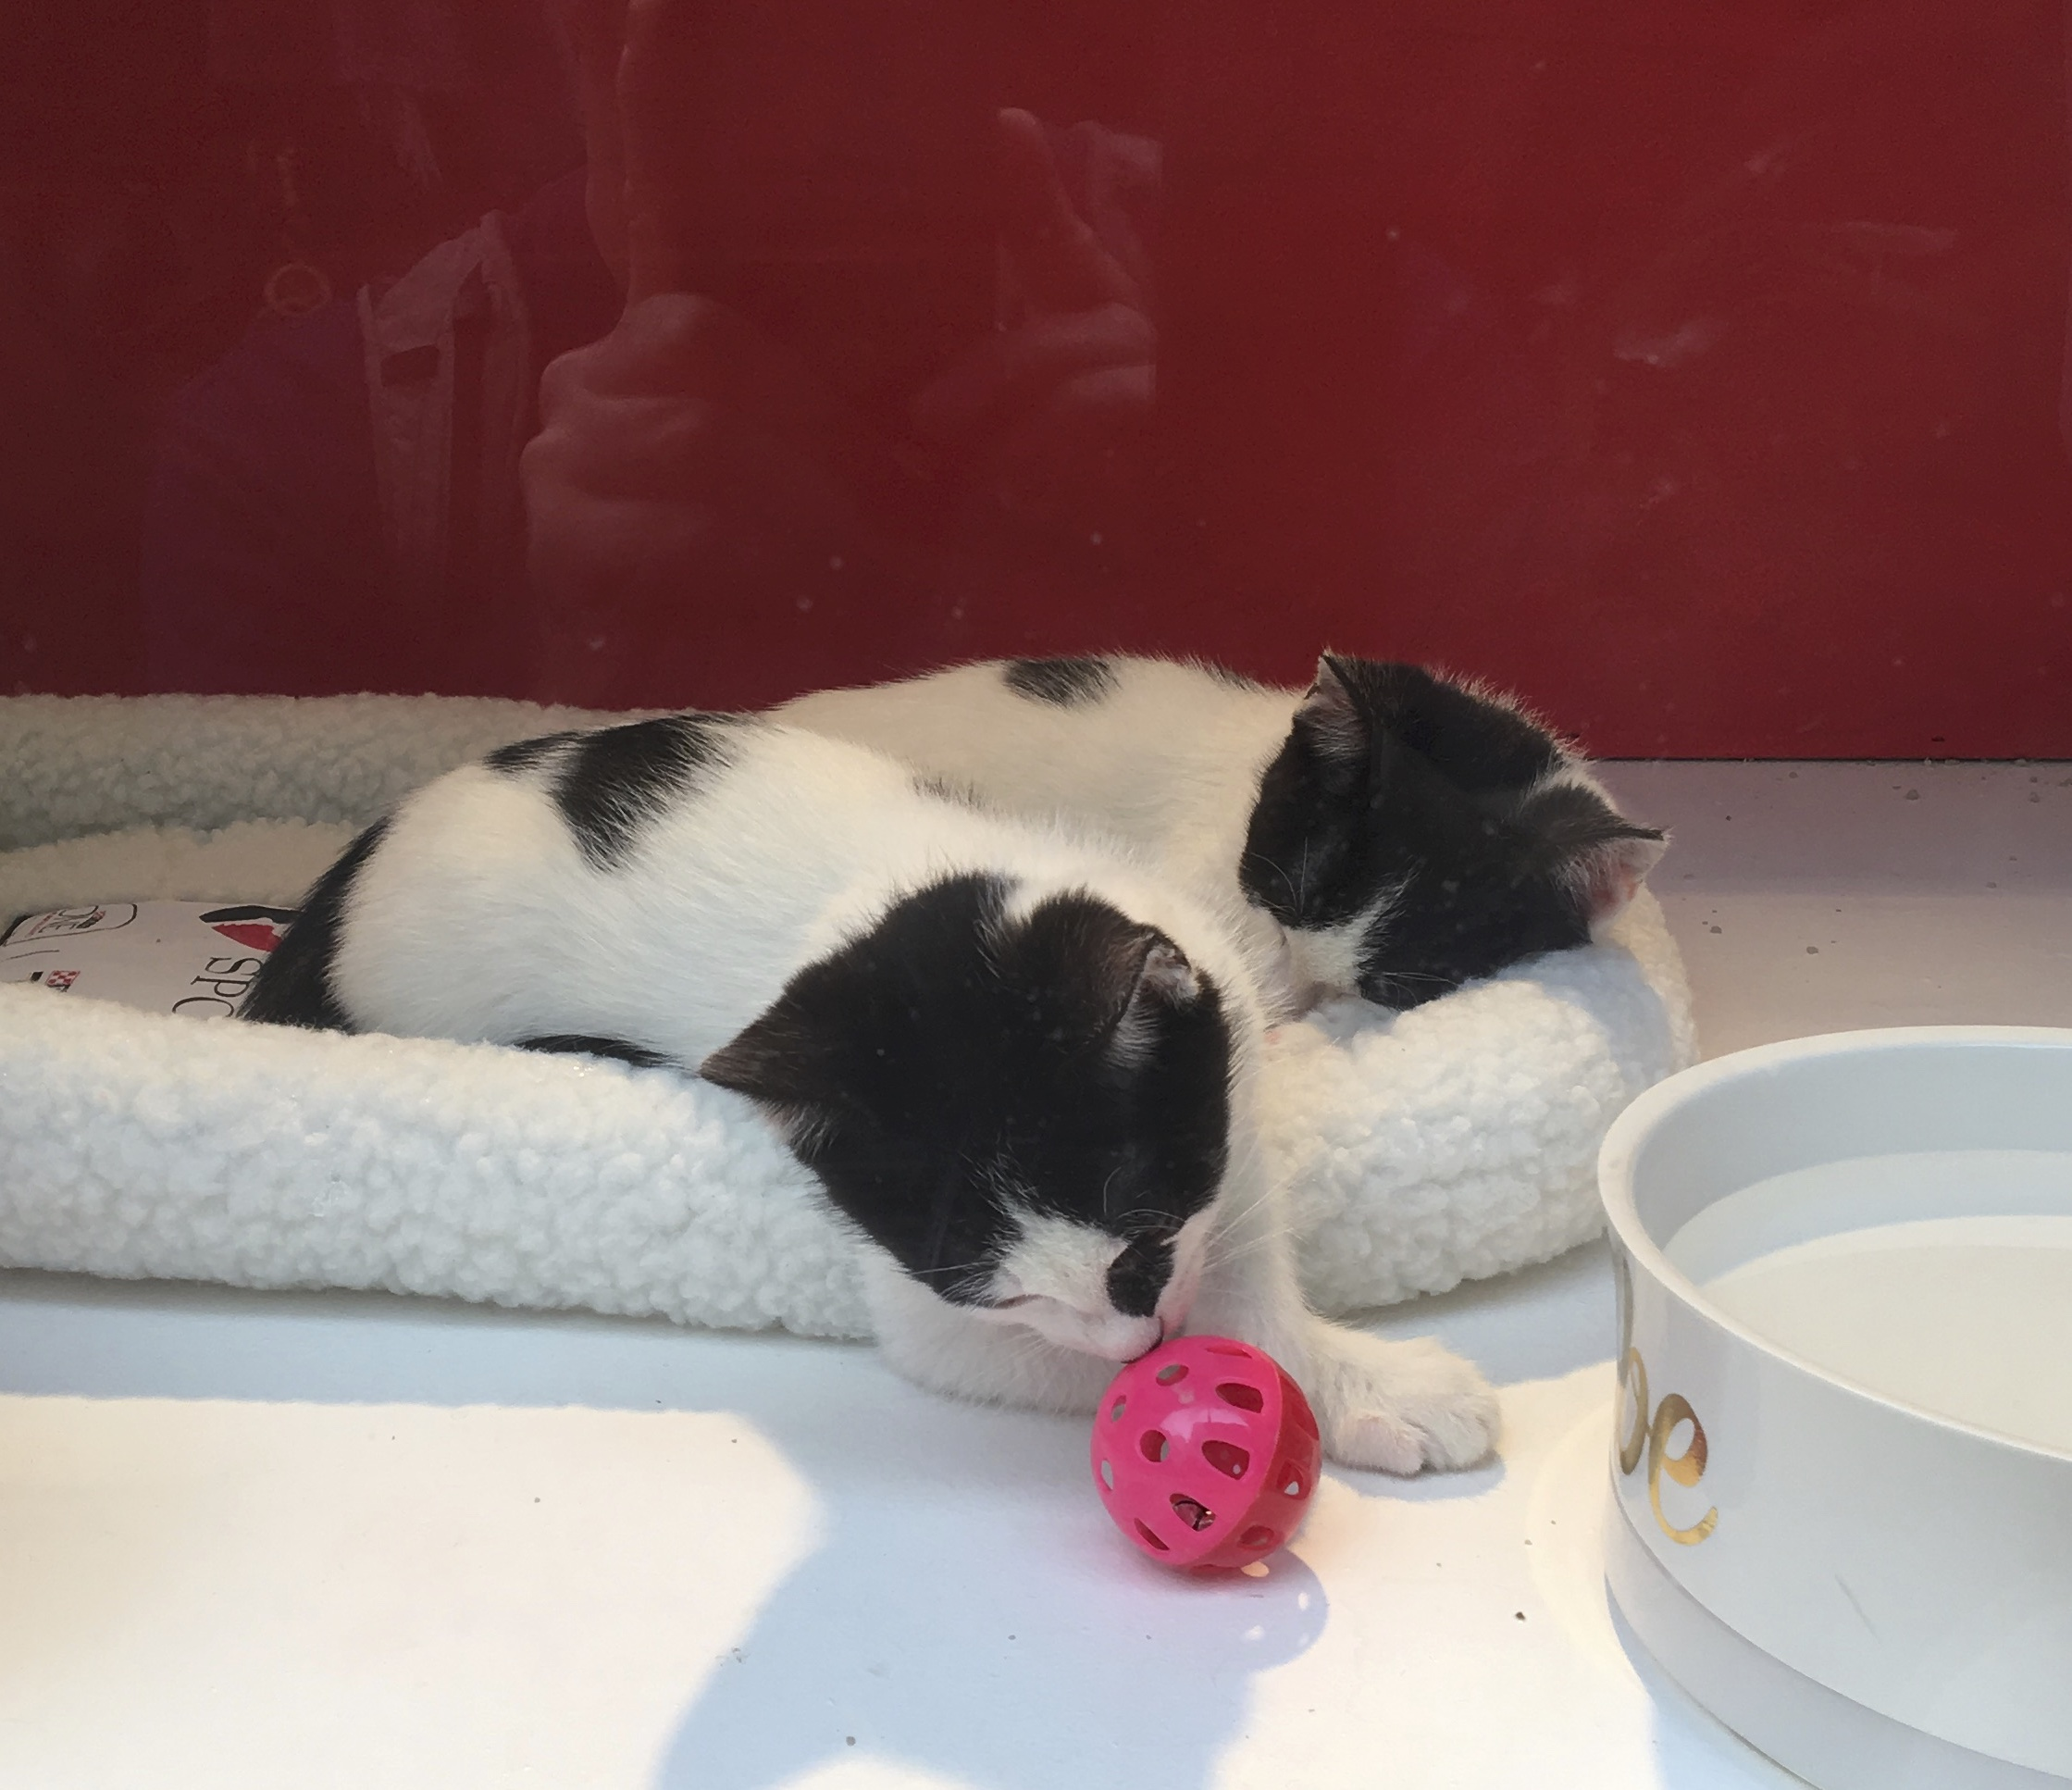 Two Black And White Kittens, One Sleeping, One Playing With A Ball